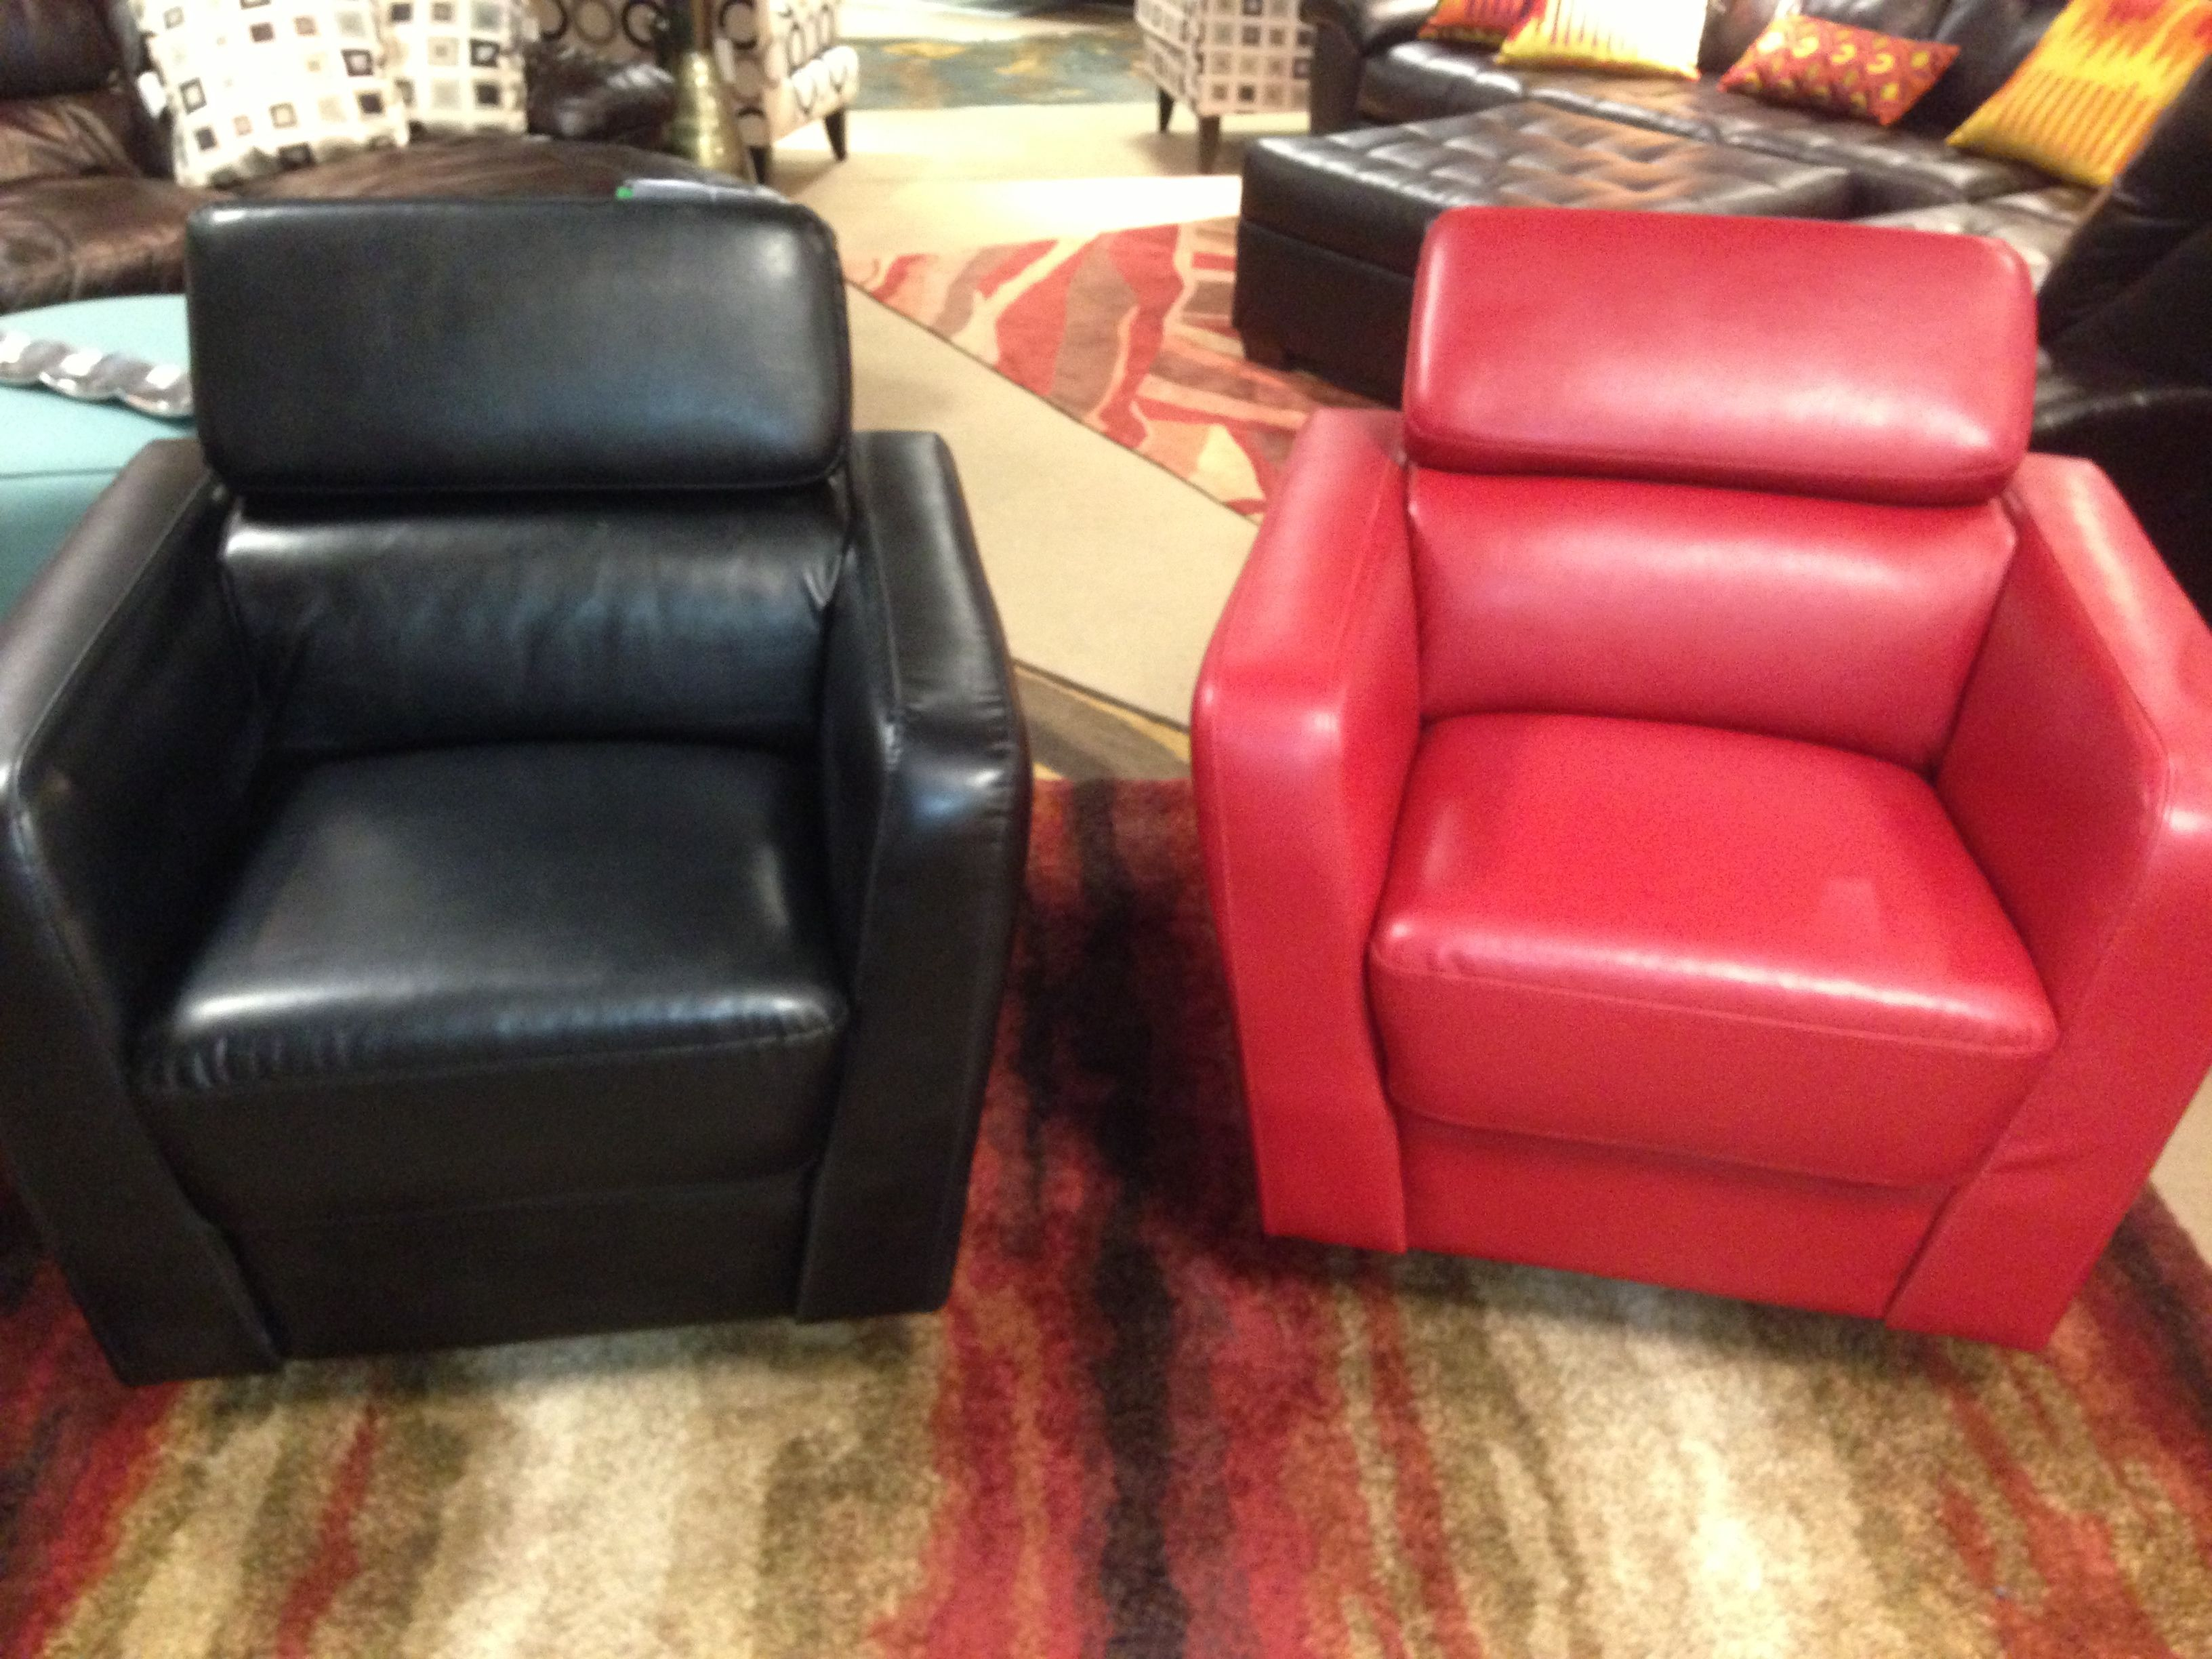 Contemporary Leather Chairs Black Red Www Miskellys Com Contemporary Leather Chair Retail Furniture Furniture